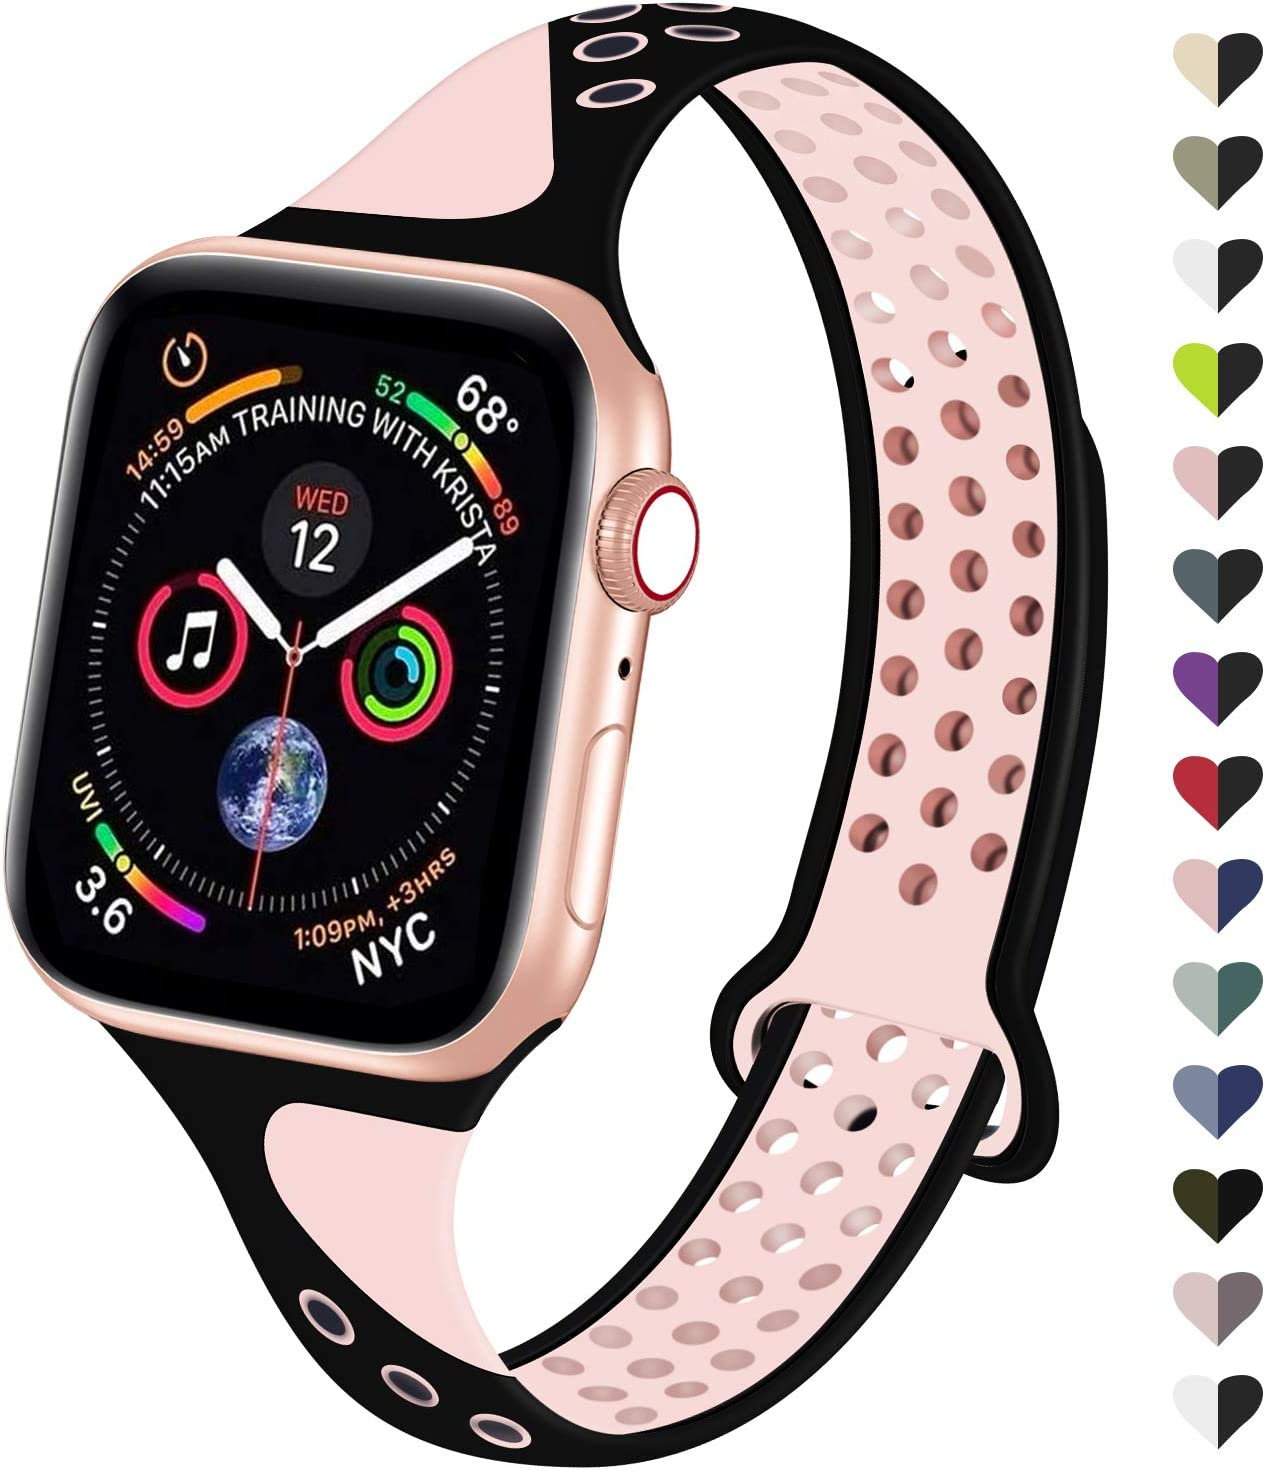 YAXIN Compatible for Apple Watch Band 40mm 38mm Women Men Replacement Sport Band Wristband Super Breathable Sports Style Thin Silicone Watch Strap Compatible with iWatch Series 5 4 3 2 1